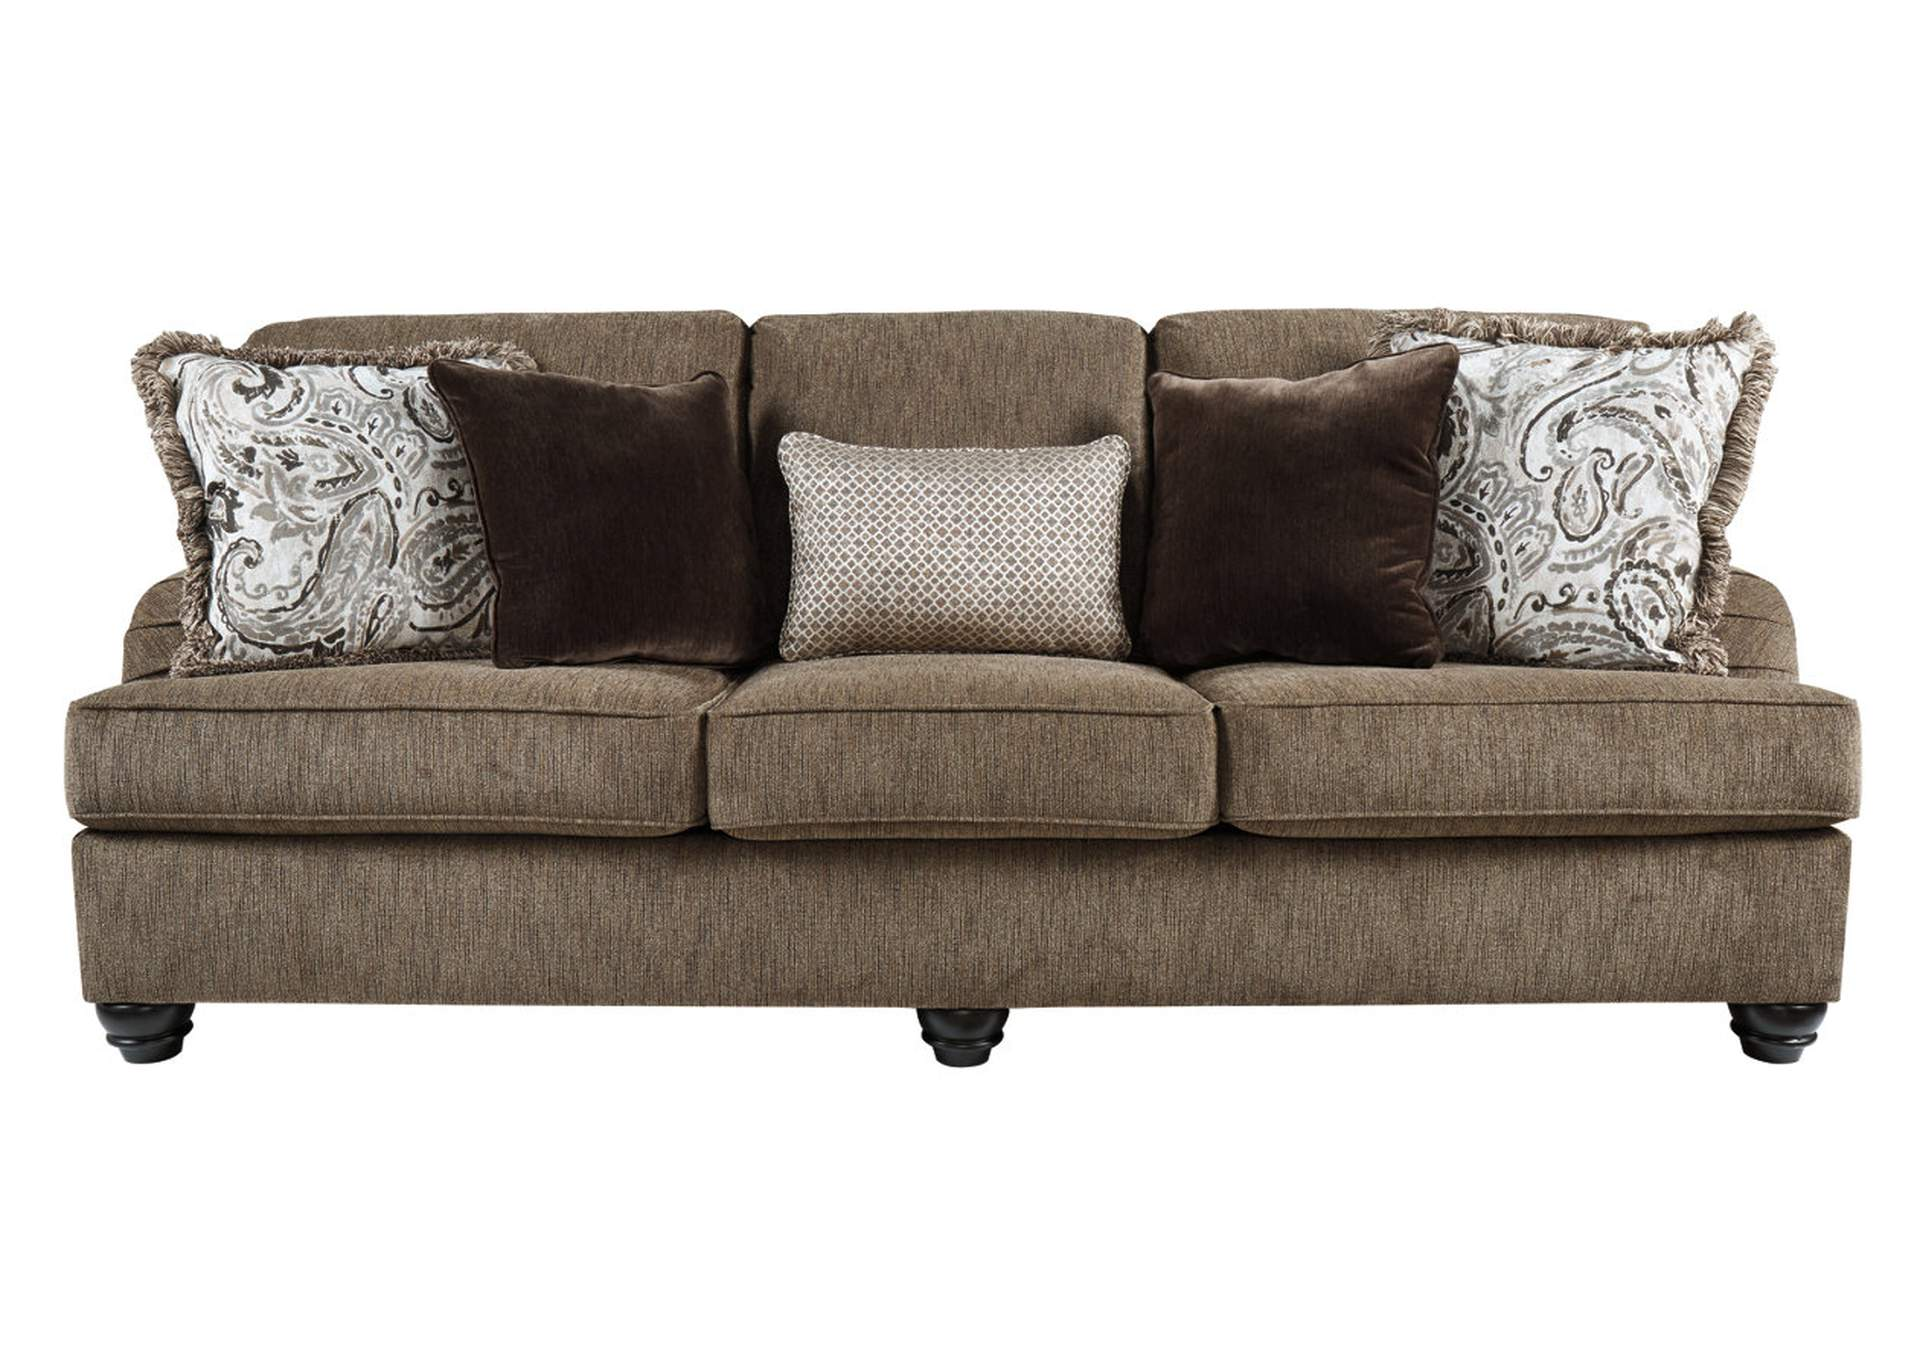 Braemar Brown Sofa w/5 Pillows,Signature Design By Ashley